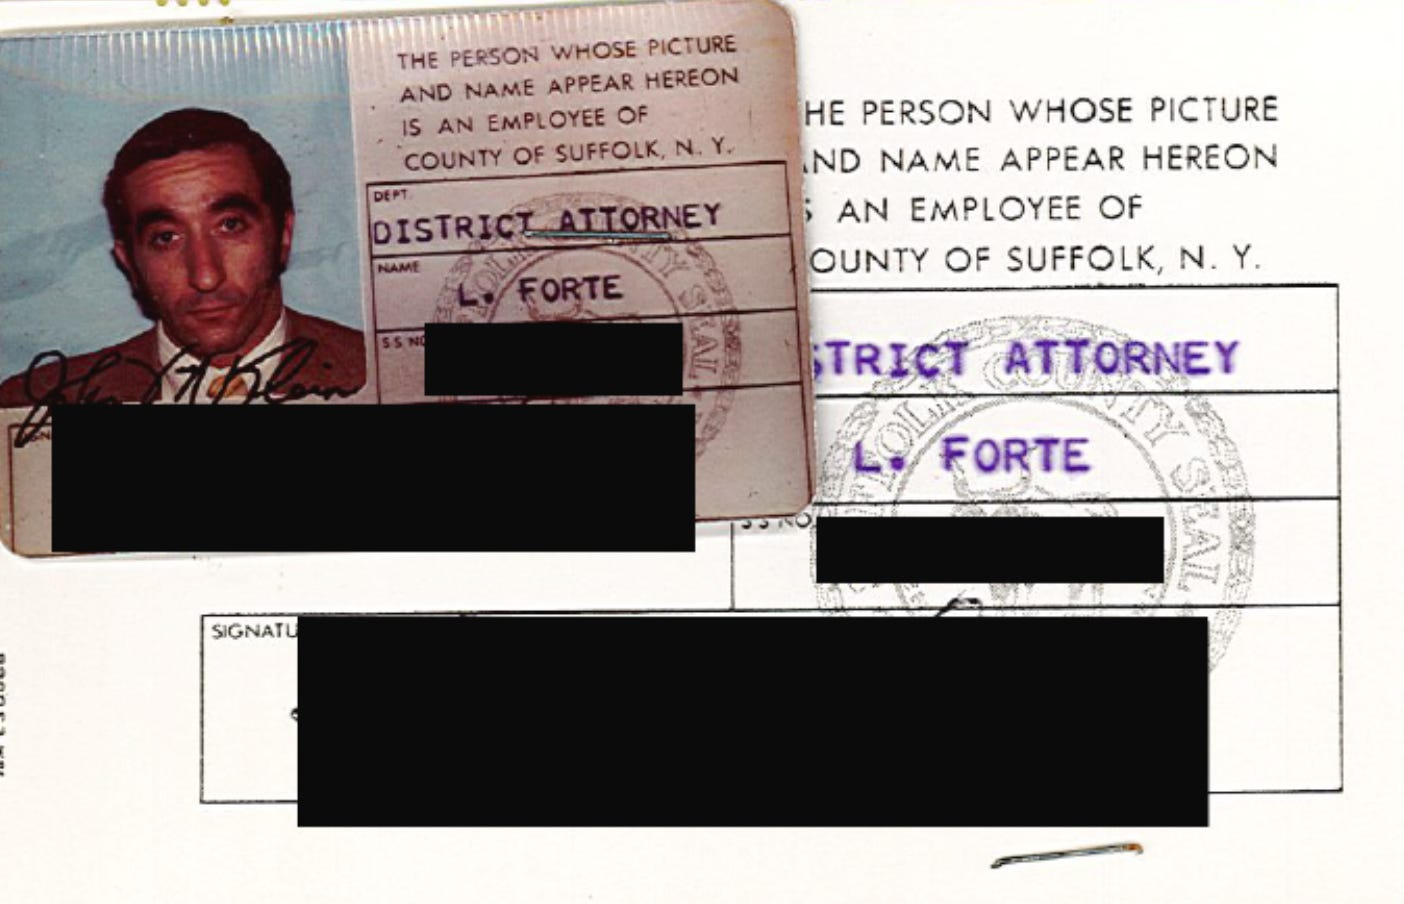 Leonard Forte's indentification from his tenure as a detective-investigator in New York's Suffolk County District Attorney's Office. He retired two years before he was charged with felony sexual assault in Vermont.